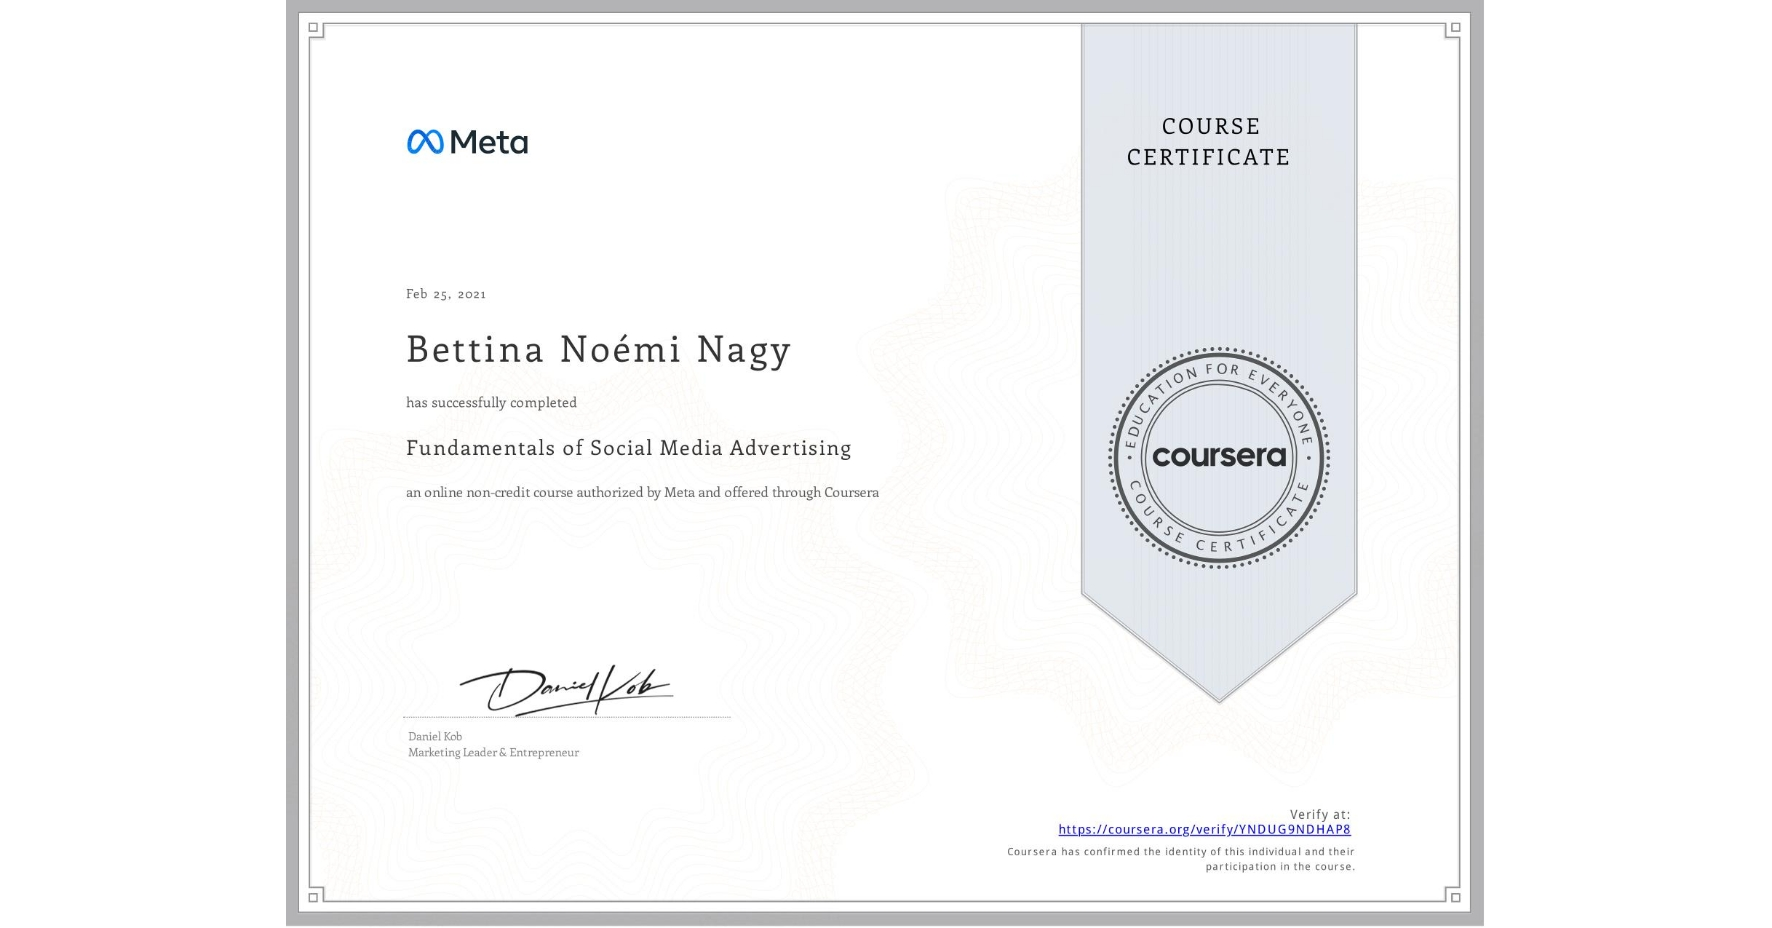 View certificate for Bettina Noémi Nagy, Fundamentals of Social Media Advertising, an online non-credit course authorized by Facebook and offered through Coursera